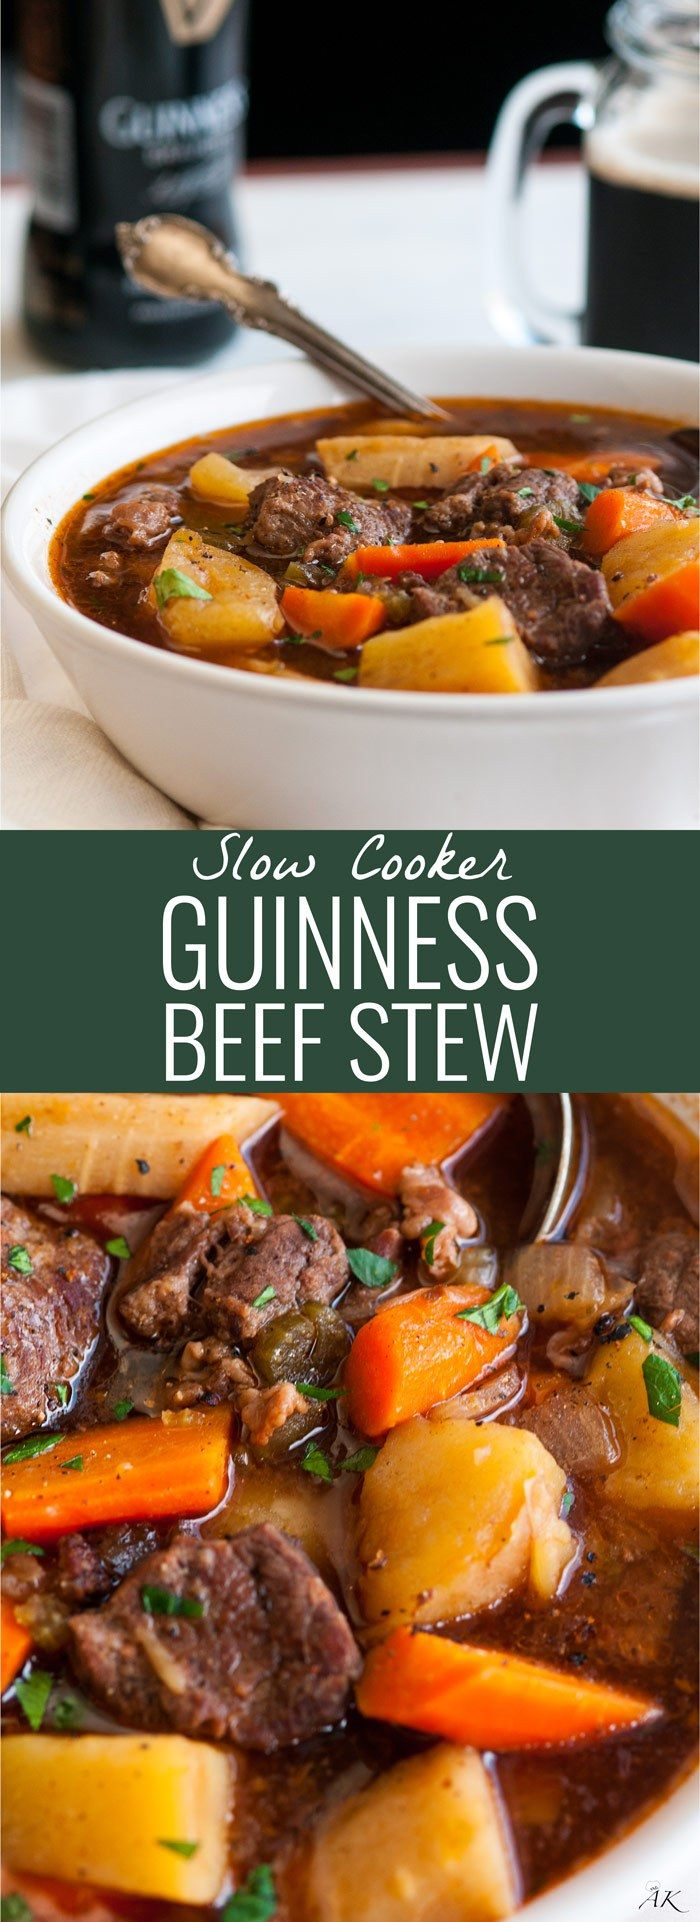 Slow Cooker Guinness Beef Stew                                                                                                                                                                                 More